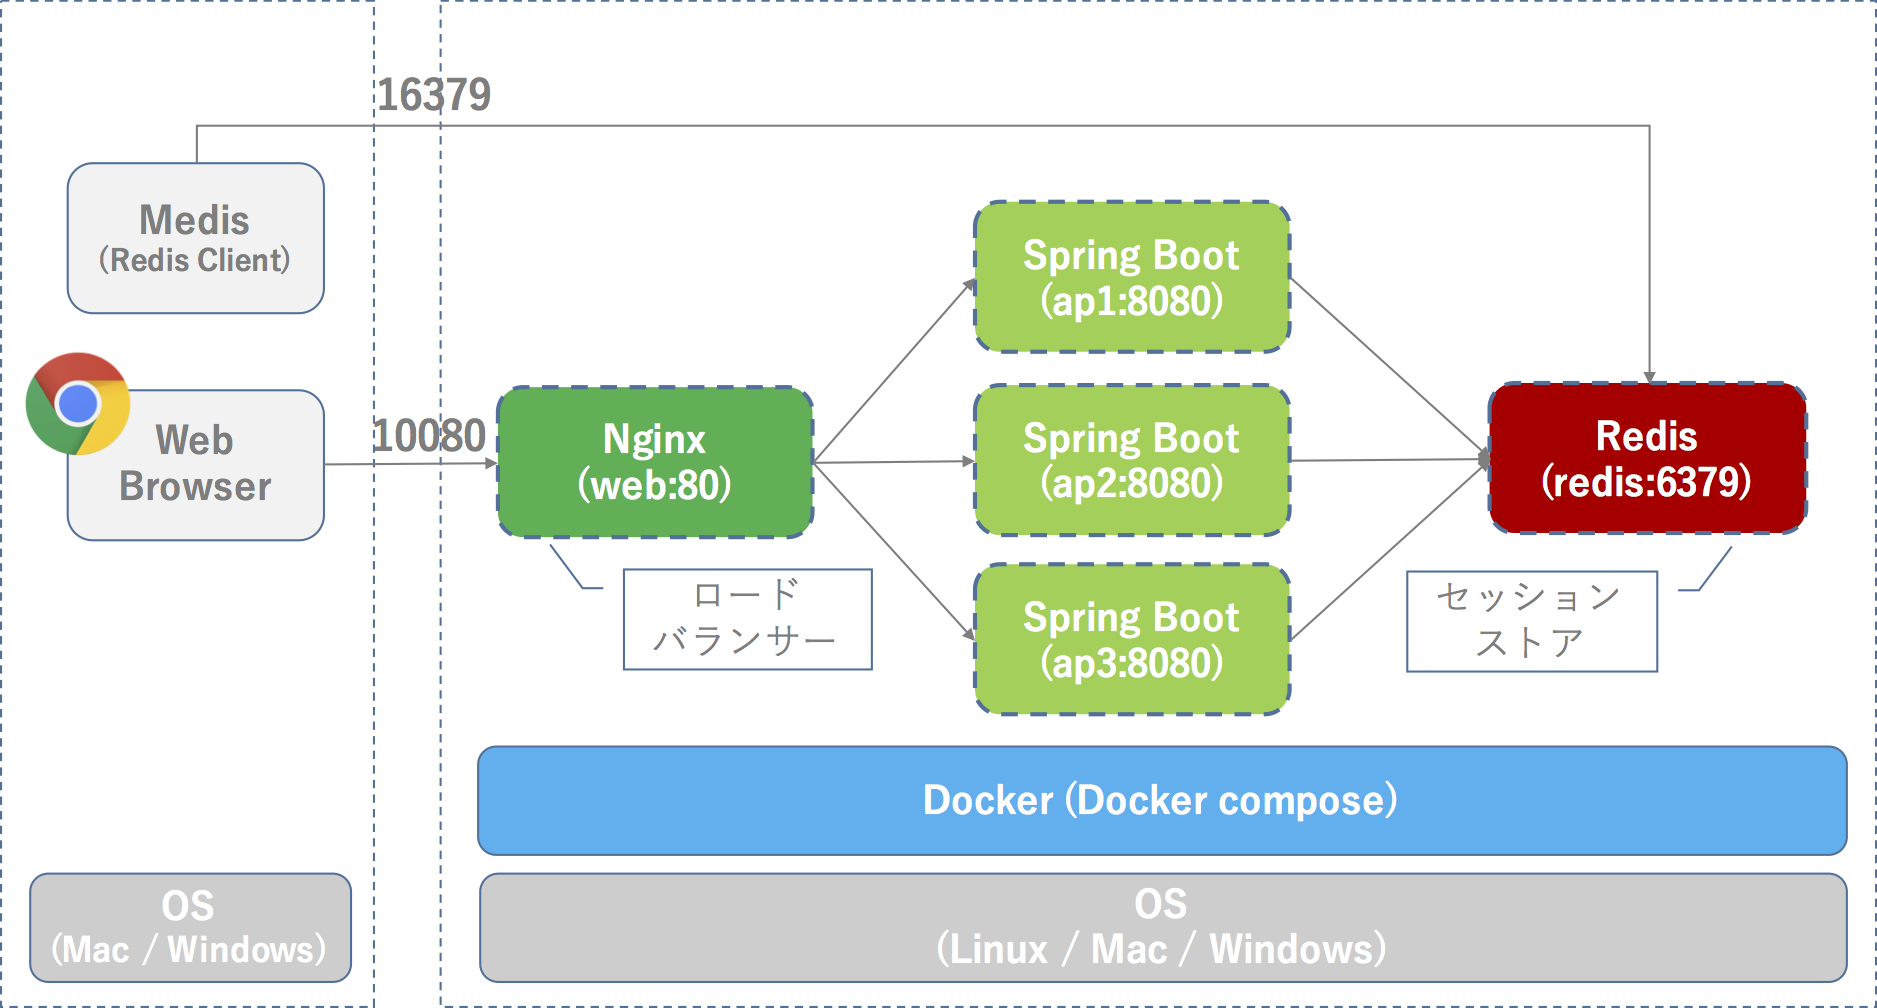 qiita-materials/spring-boot/spring-session-demo at master